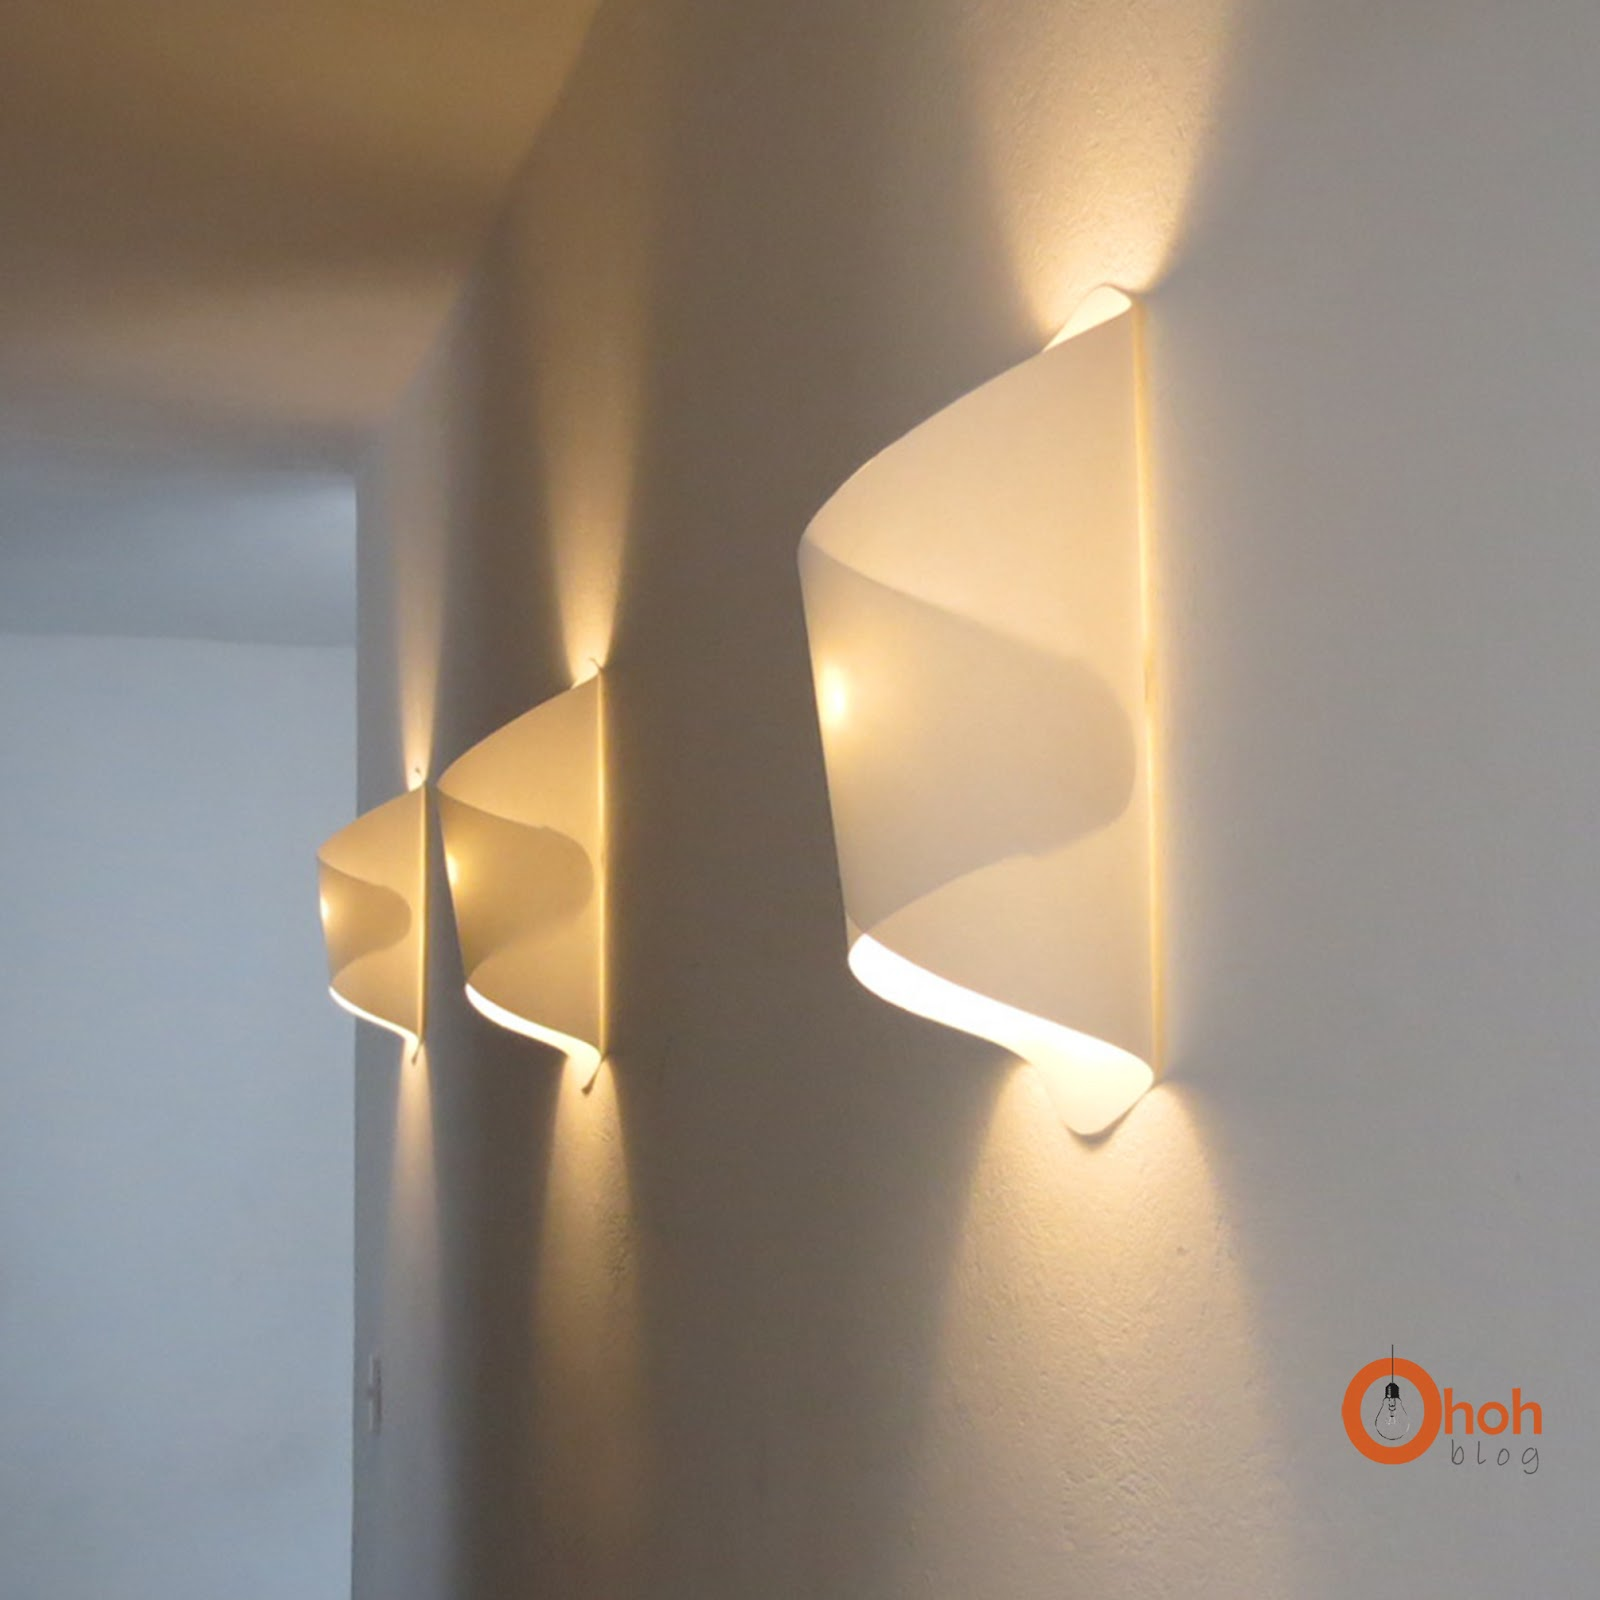 Homemade Wall Lamp : DIY paper lamp / Lampara de papel - Ohoh Blog